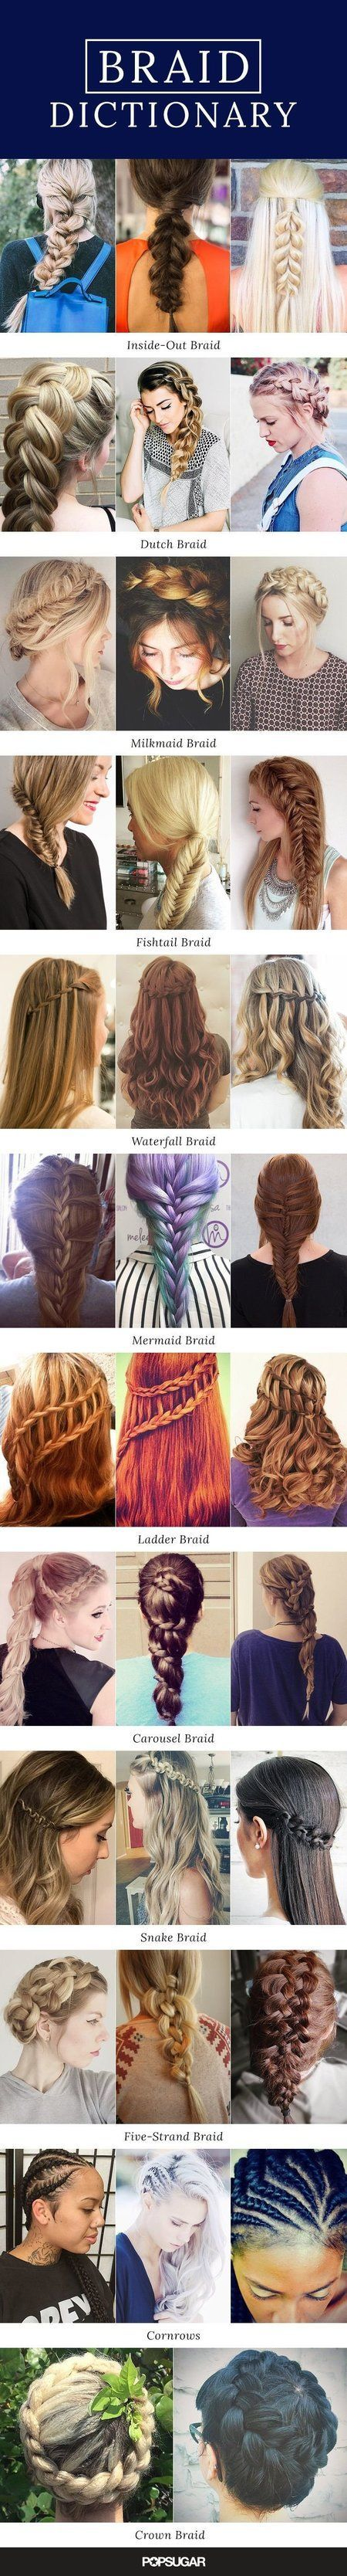 Braid dictionary  Fun and easy ways to find cute go to hairstyles: